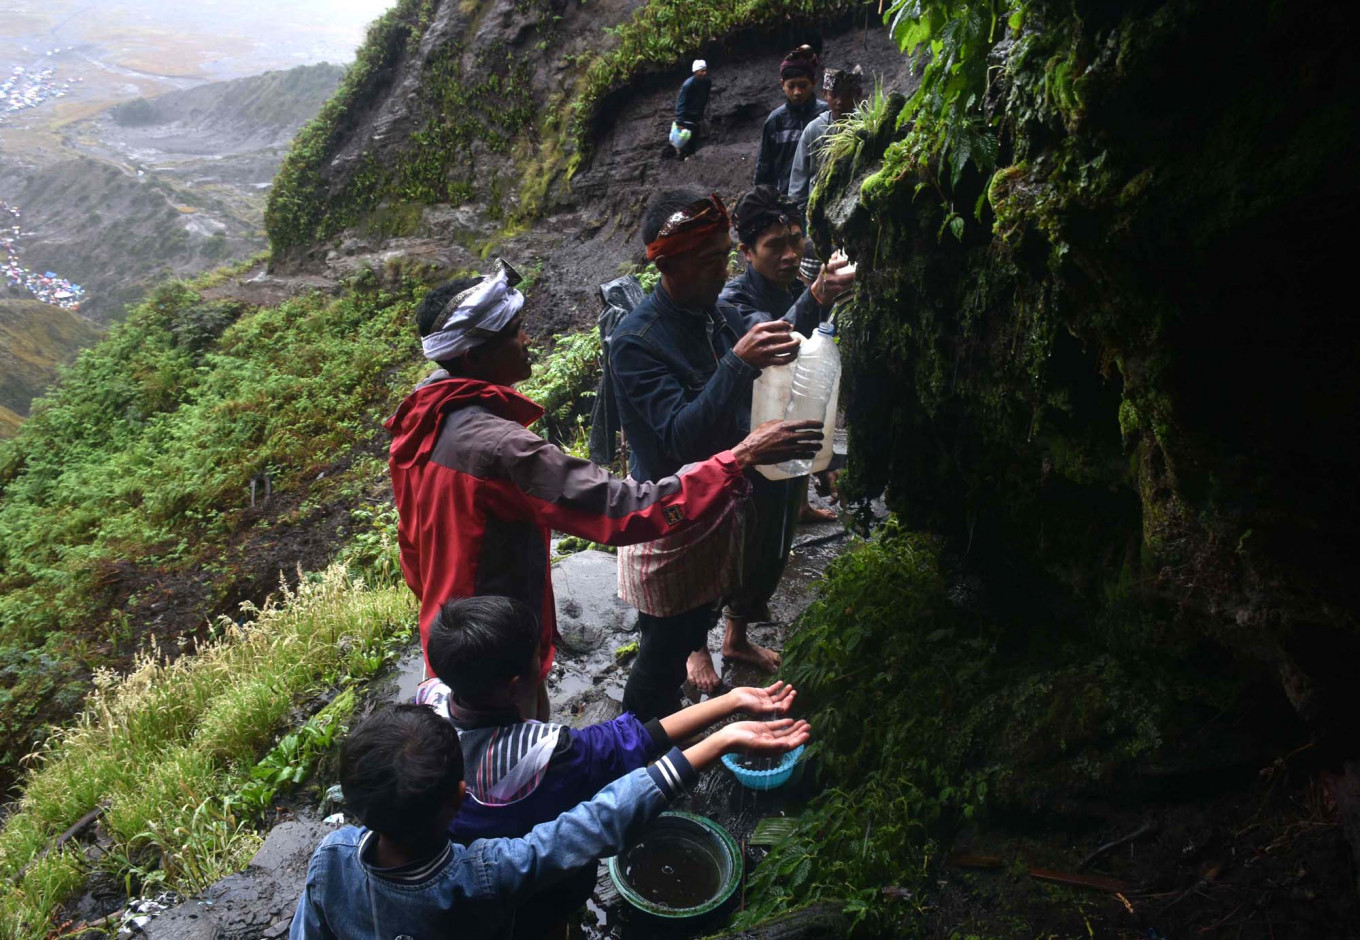 Tengger people collect the holy water from the spring. JP/Aman Rochman